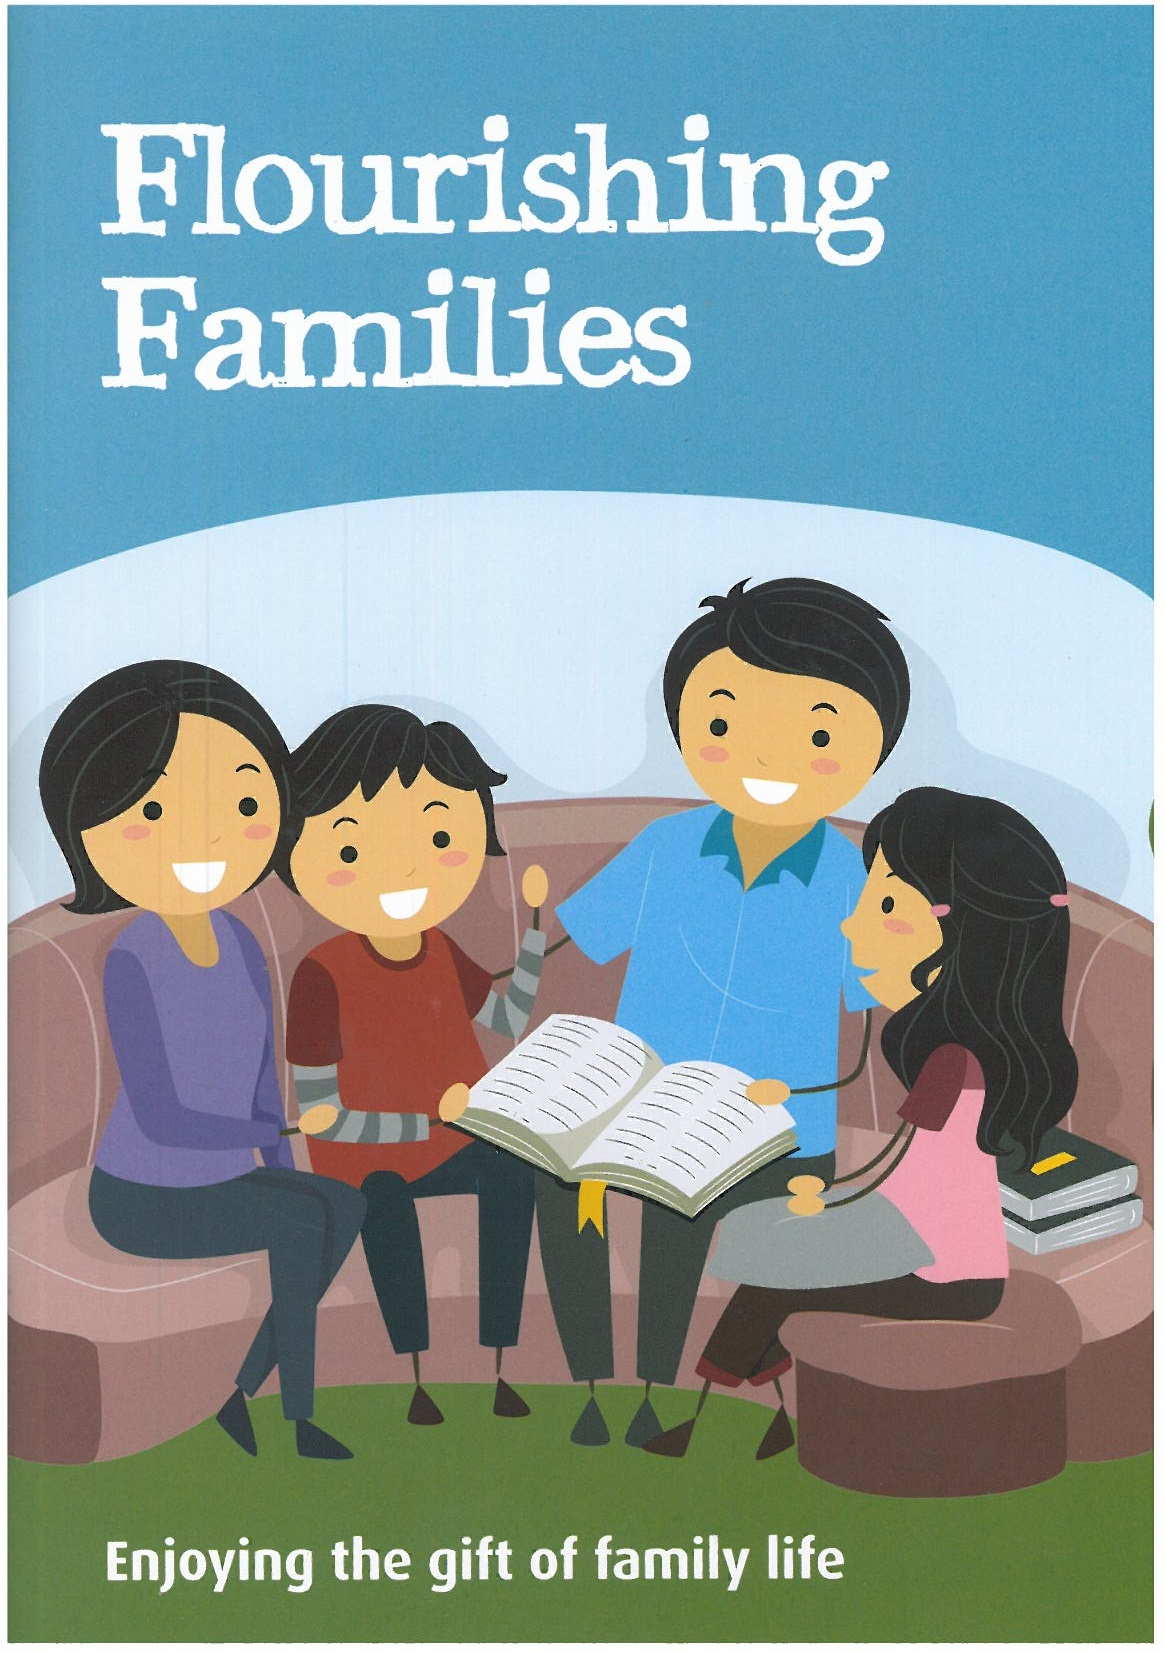 Mothers' Union resource on developing family life